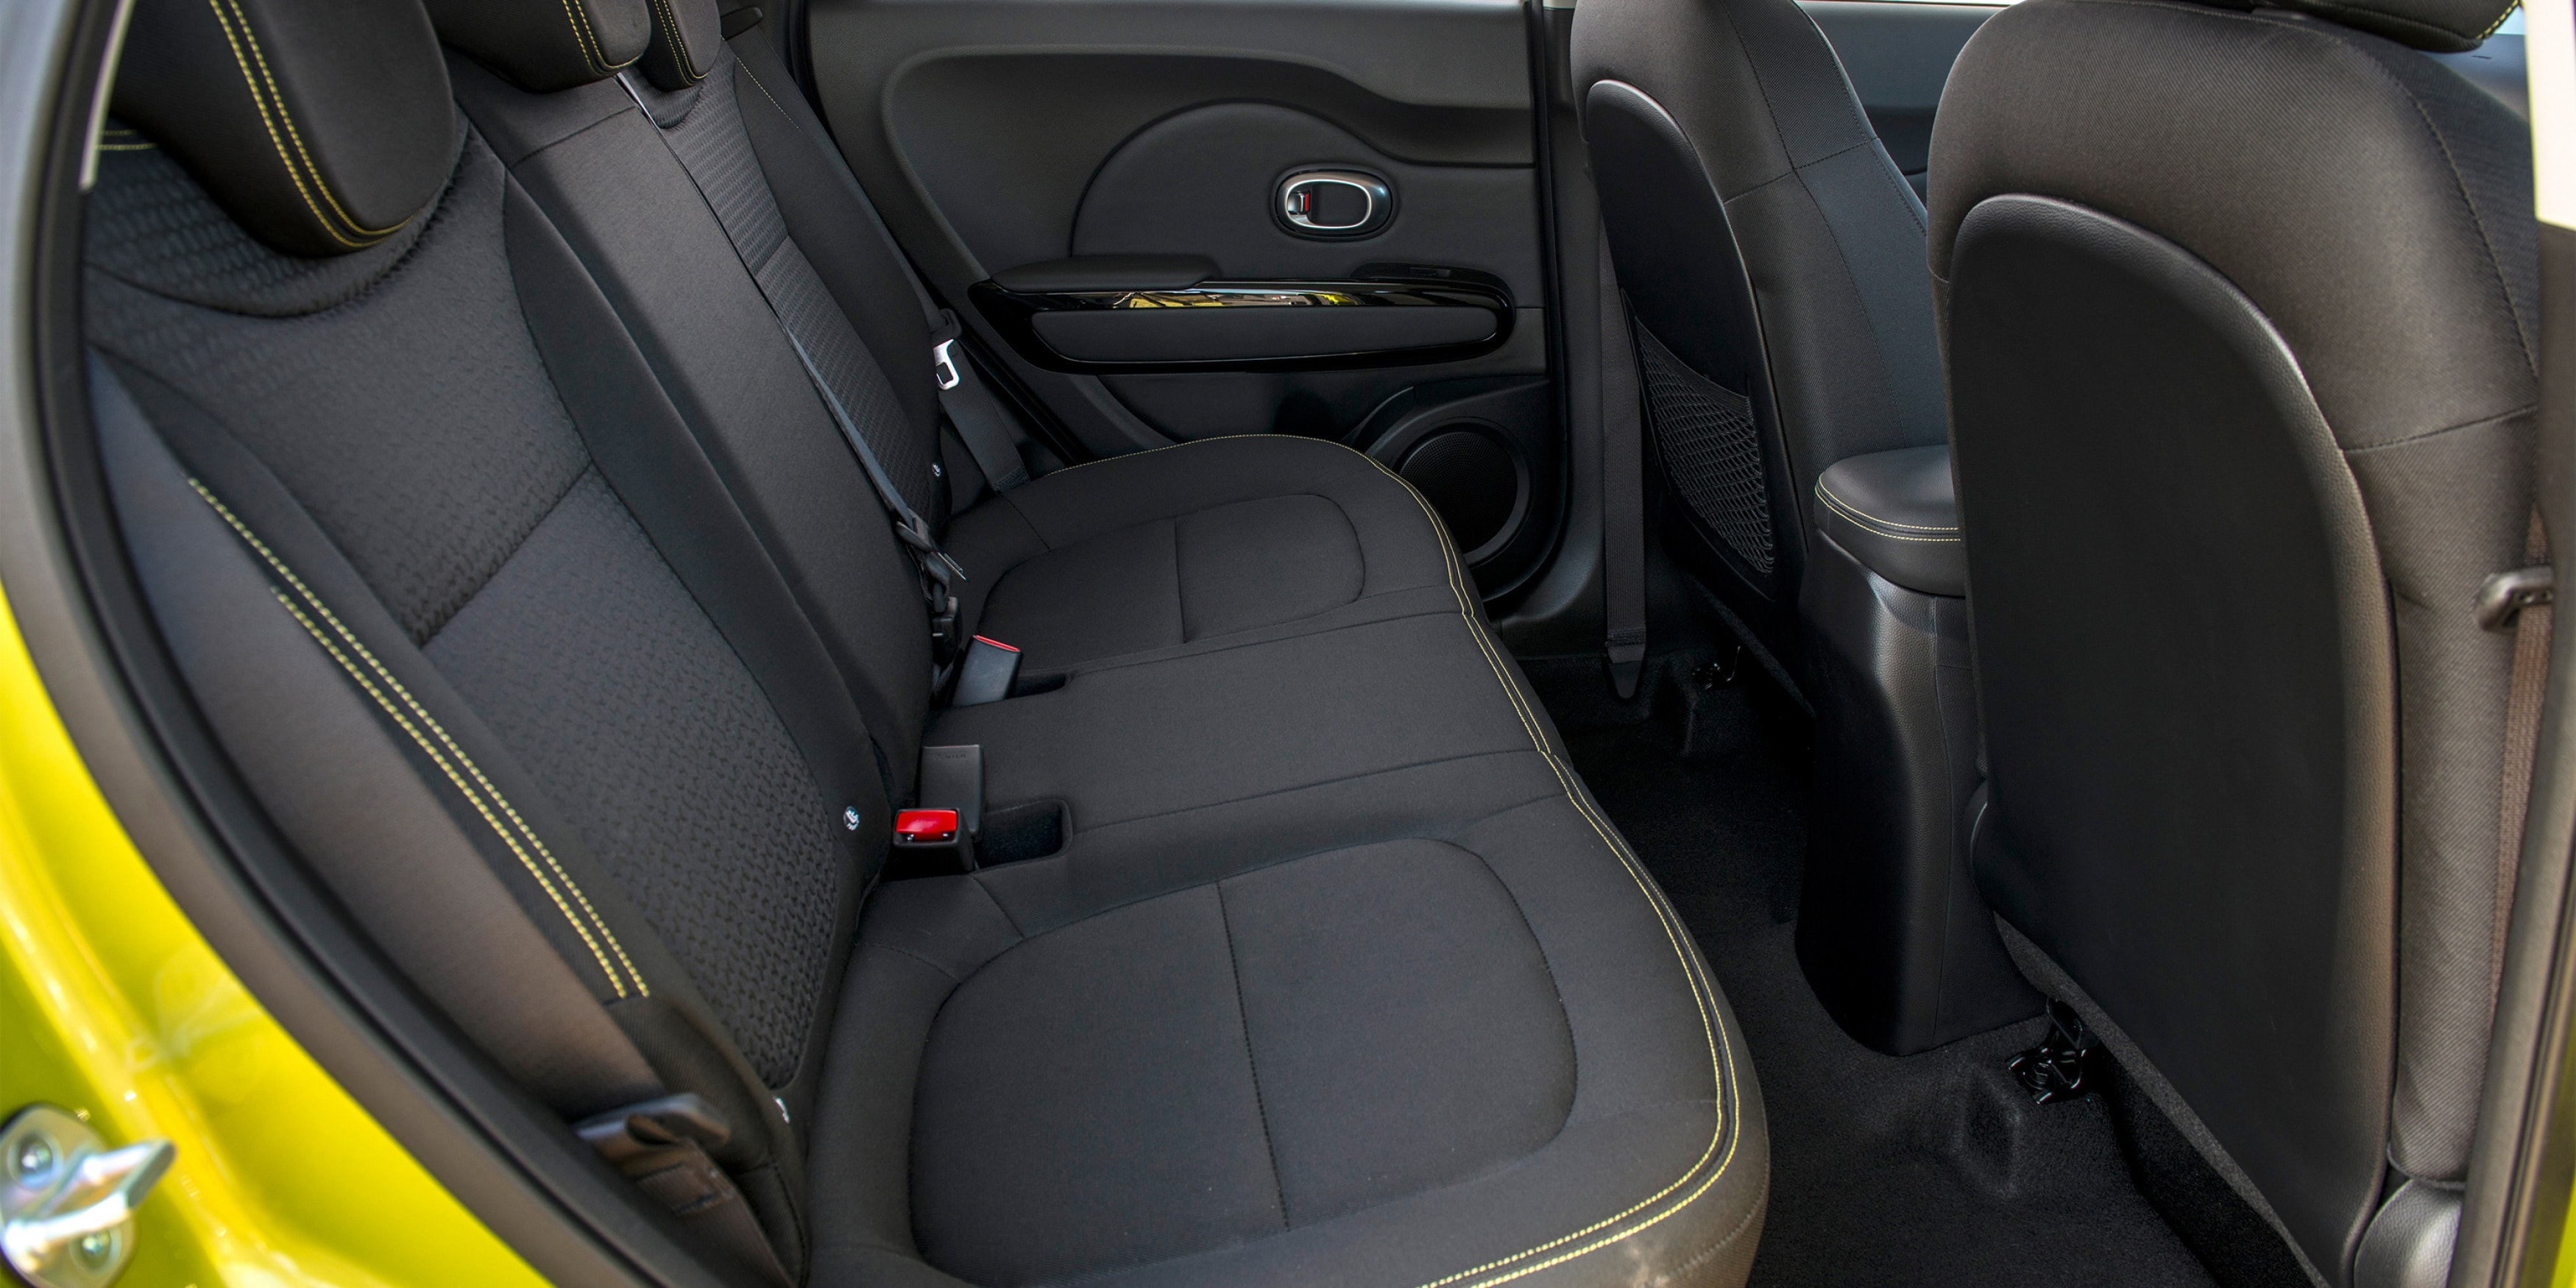 Unlike some smaller alternatives, the Soul will take three adults across the rear seat